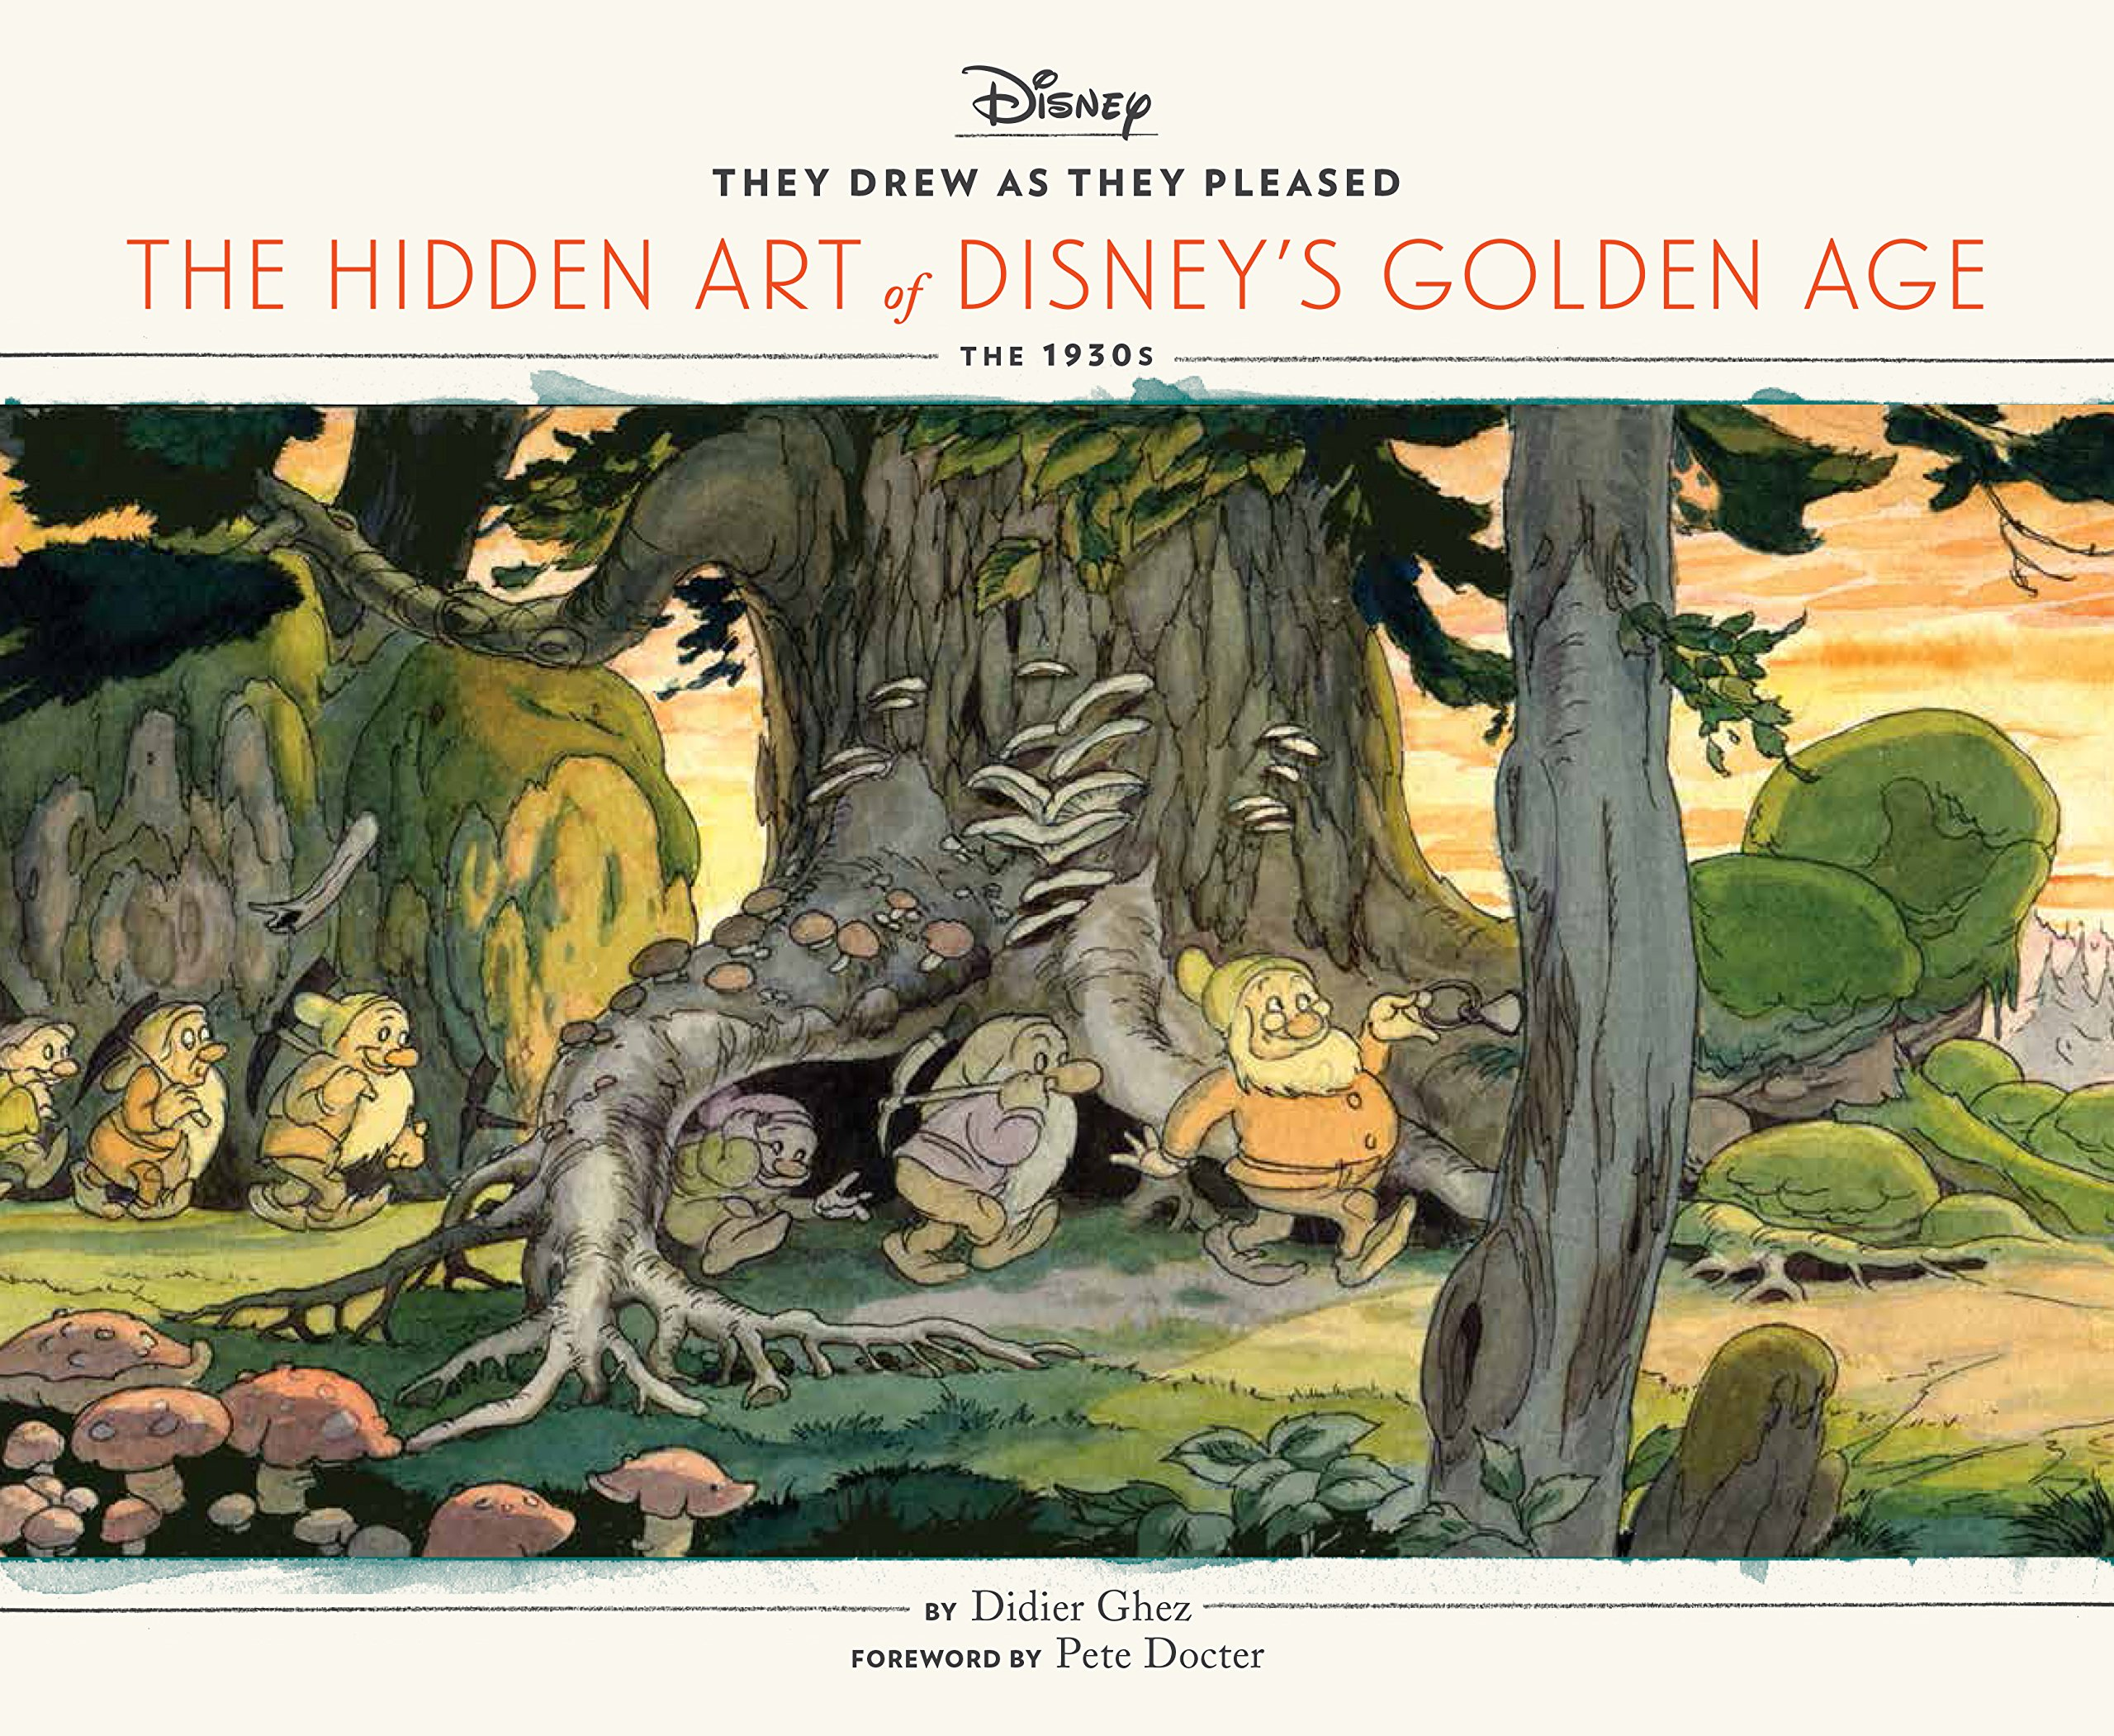 hidden art of disney golden age